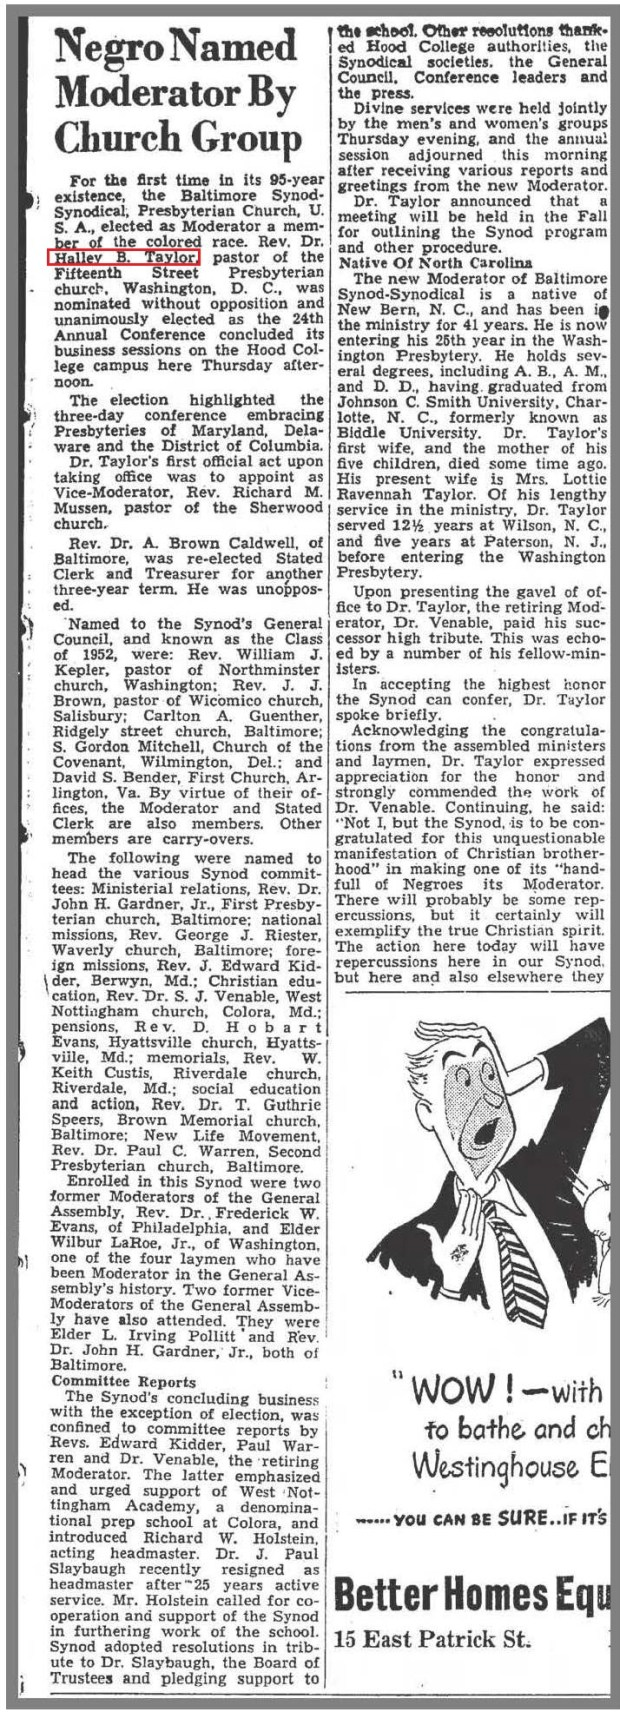 The_News_Frederick_MD_6_24_1949_HB_Taylor